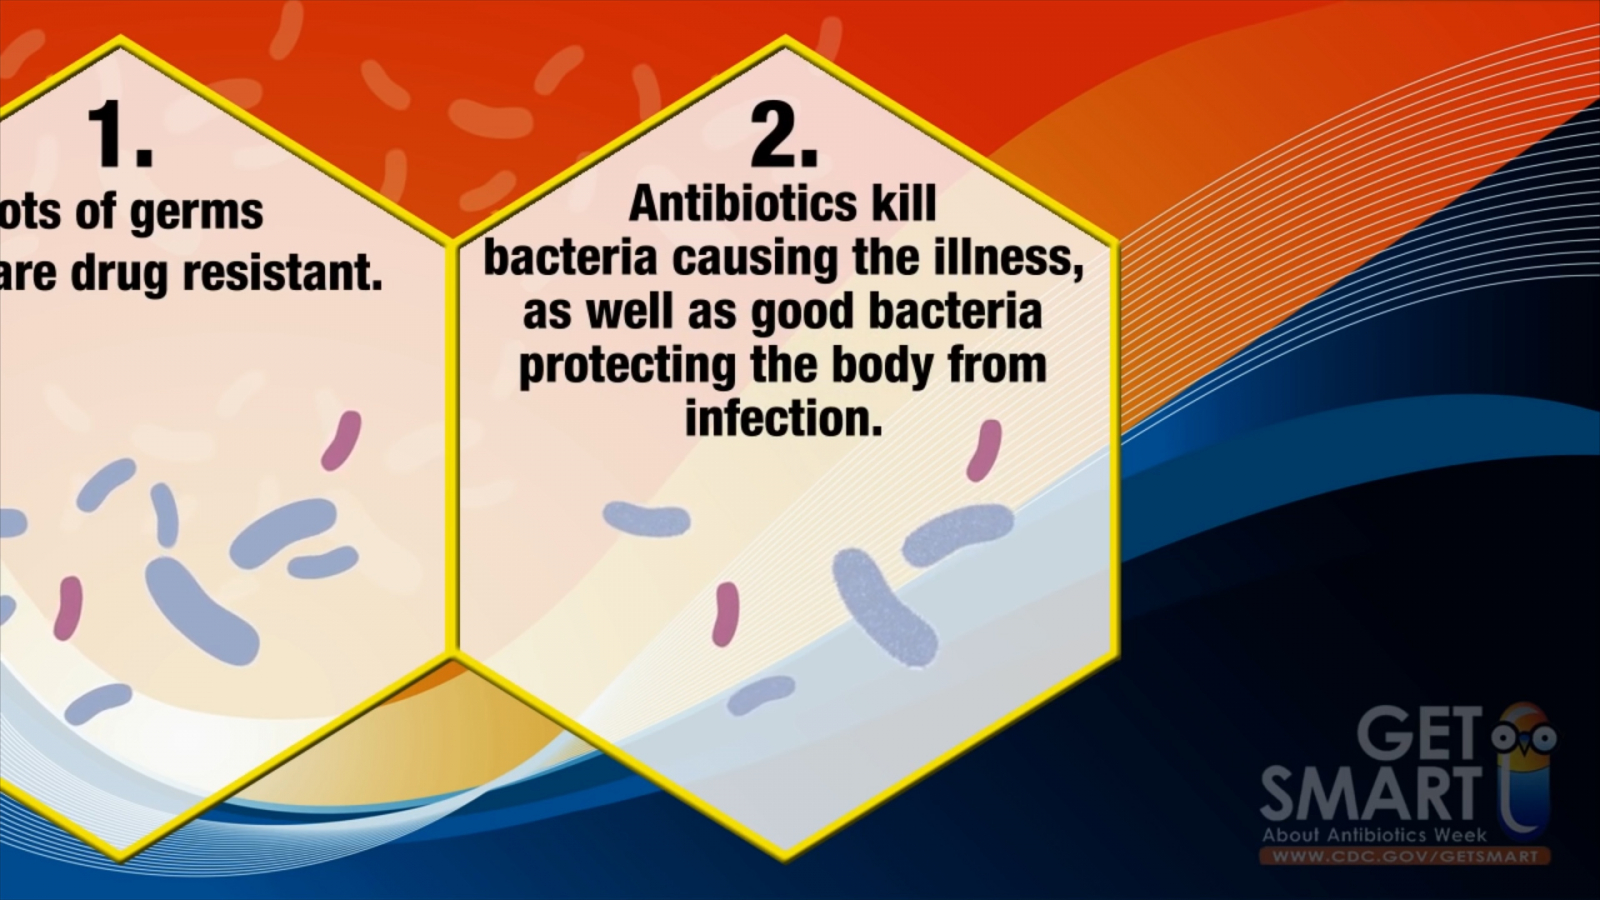 Toothpaste And Mouthwash Use May Cause Antibiotic Resistance